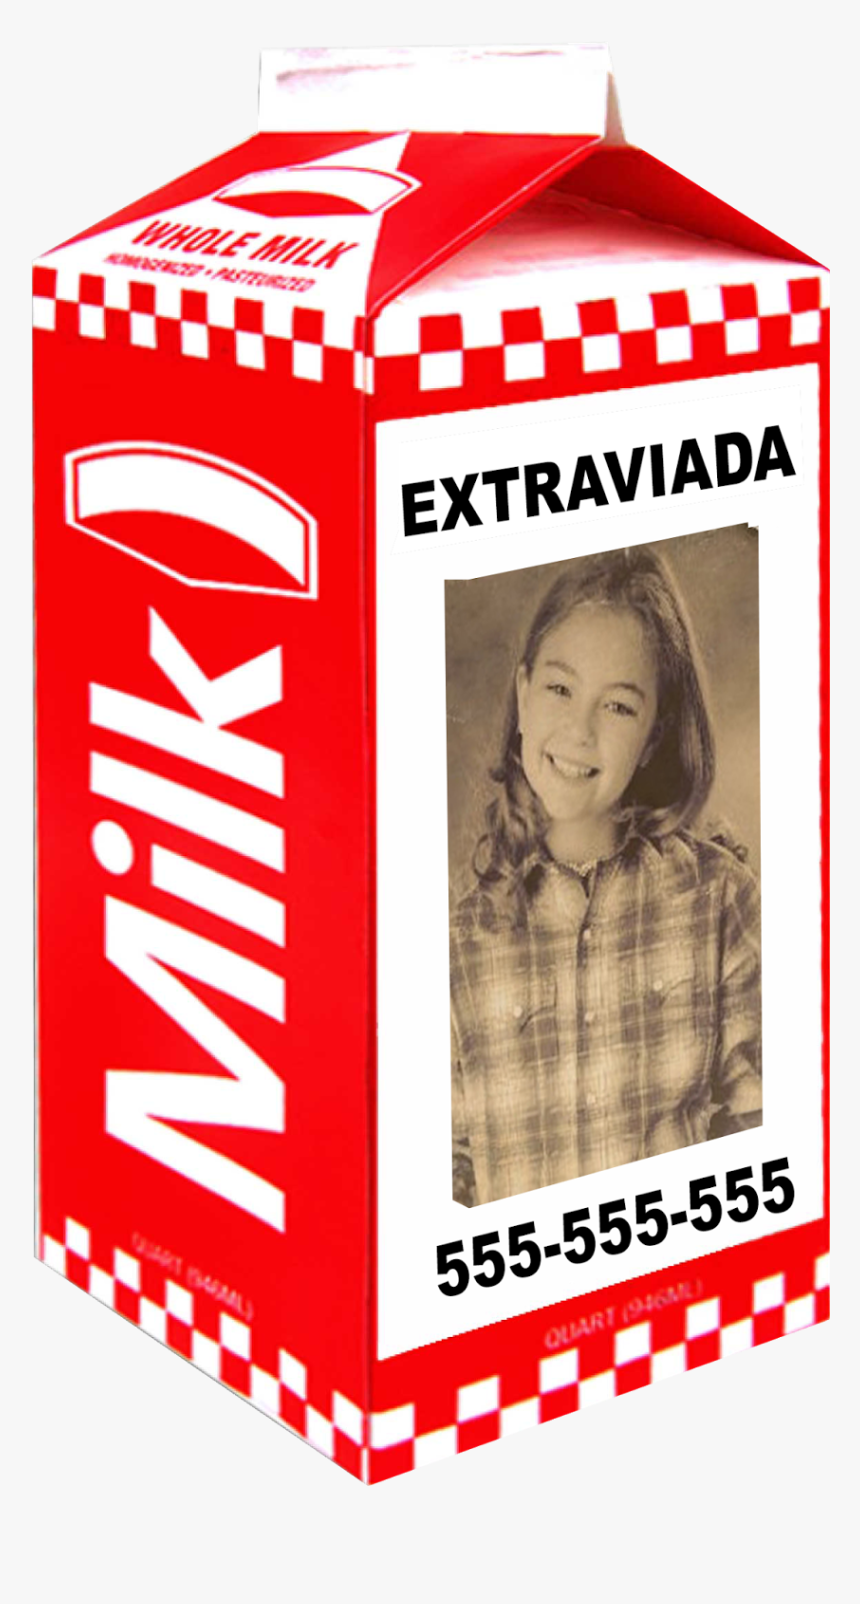 Missing Milk Carton , Png Download - Missing Milk Carton Blank, Transparent Png, Free Download